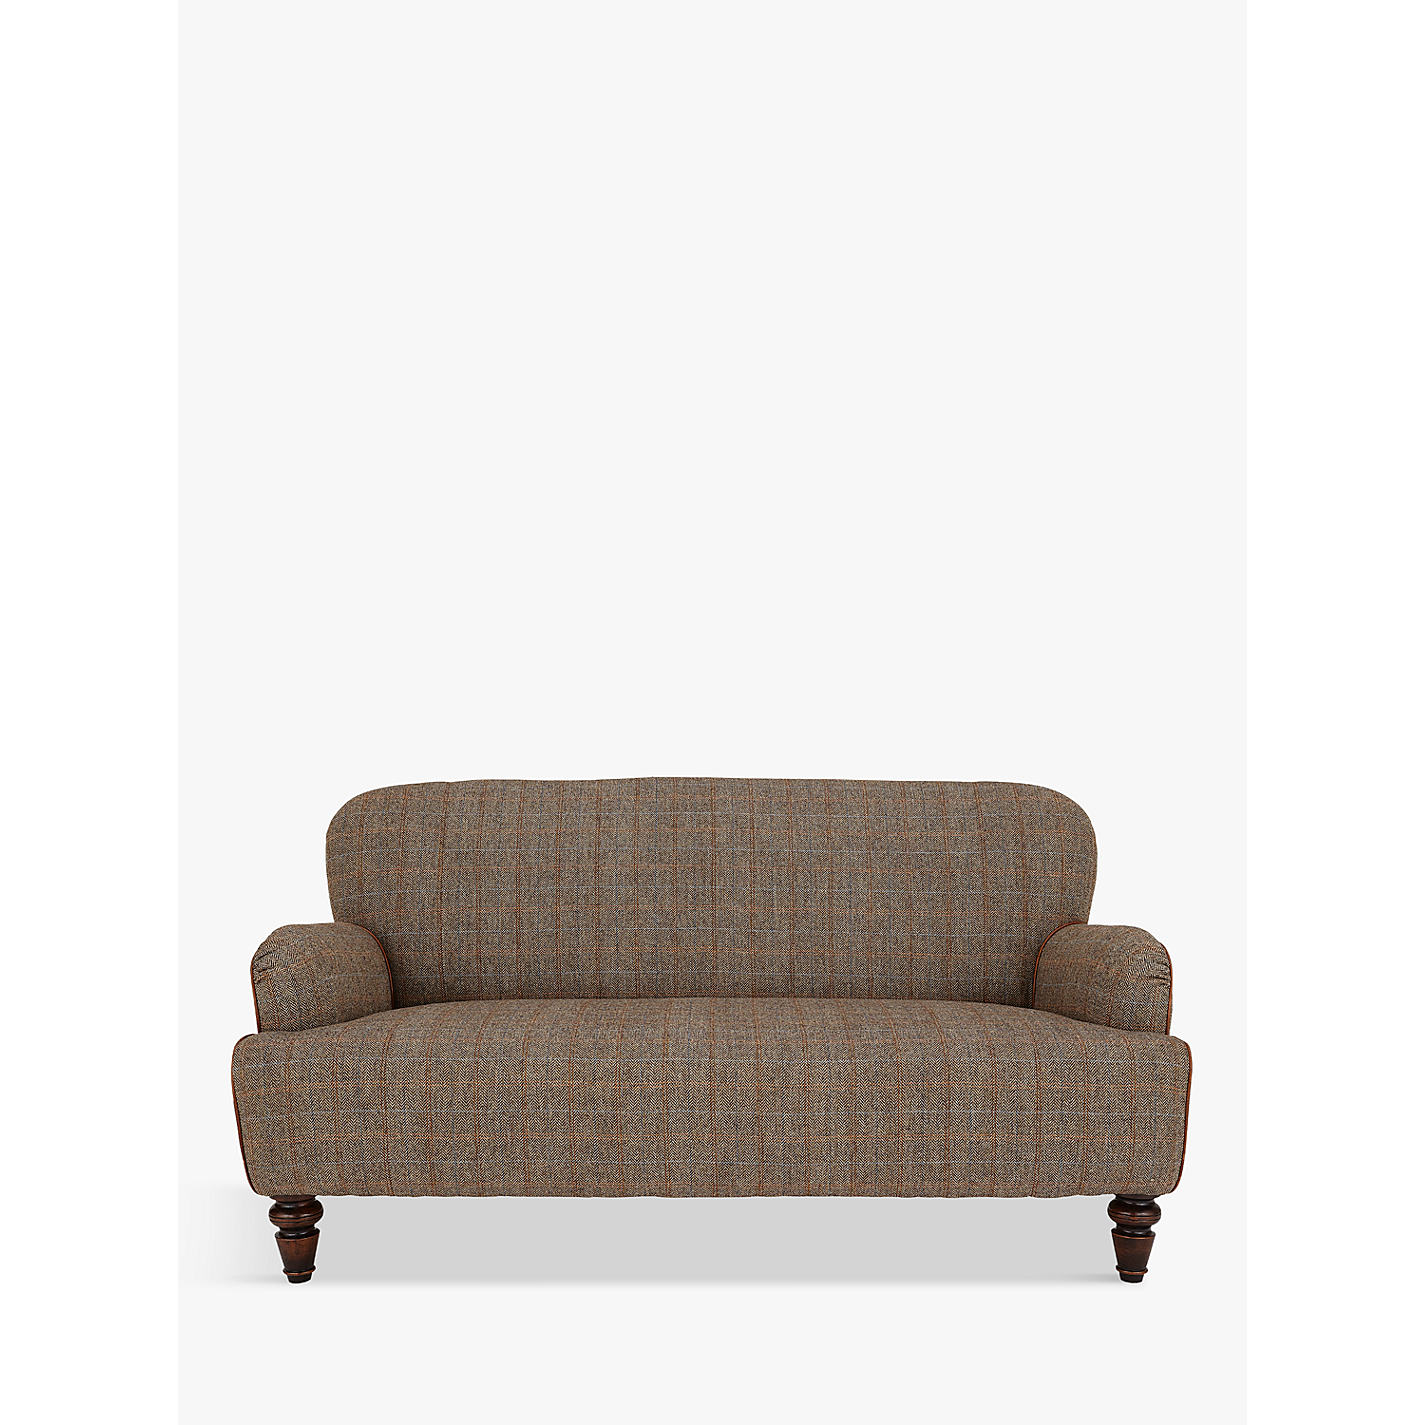 Tetrad Harris Tweed Lewis Pee 2 Seater Sofa Bracken Tan Online At Johnlewis